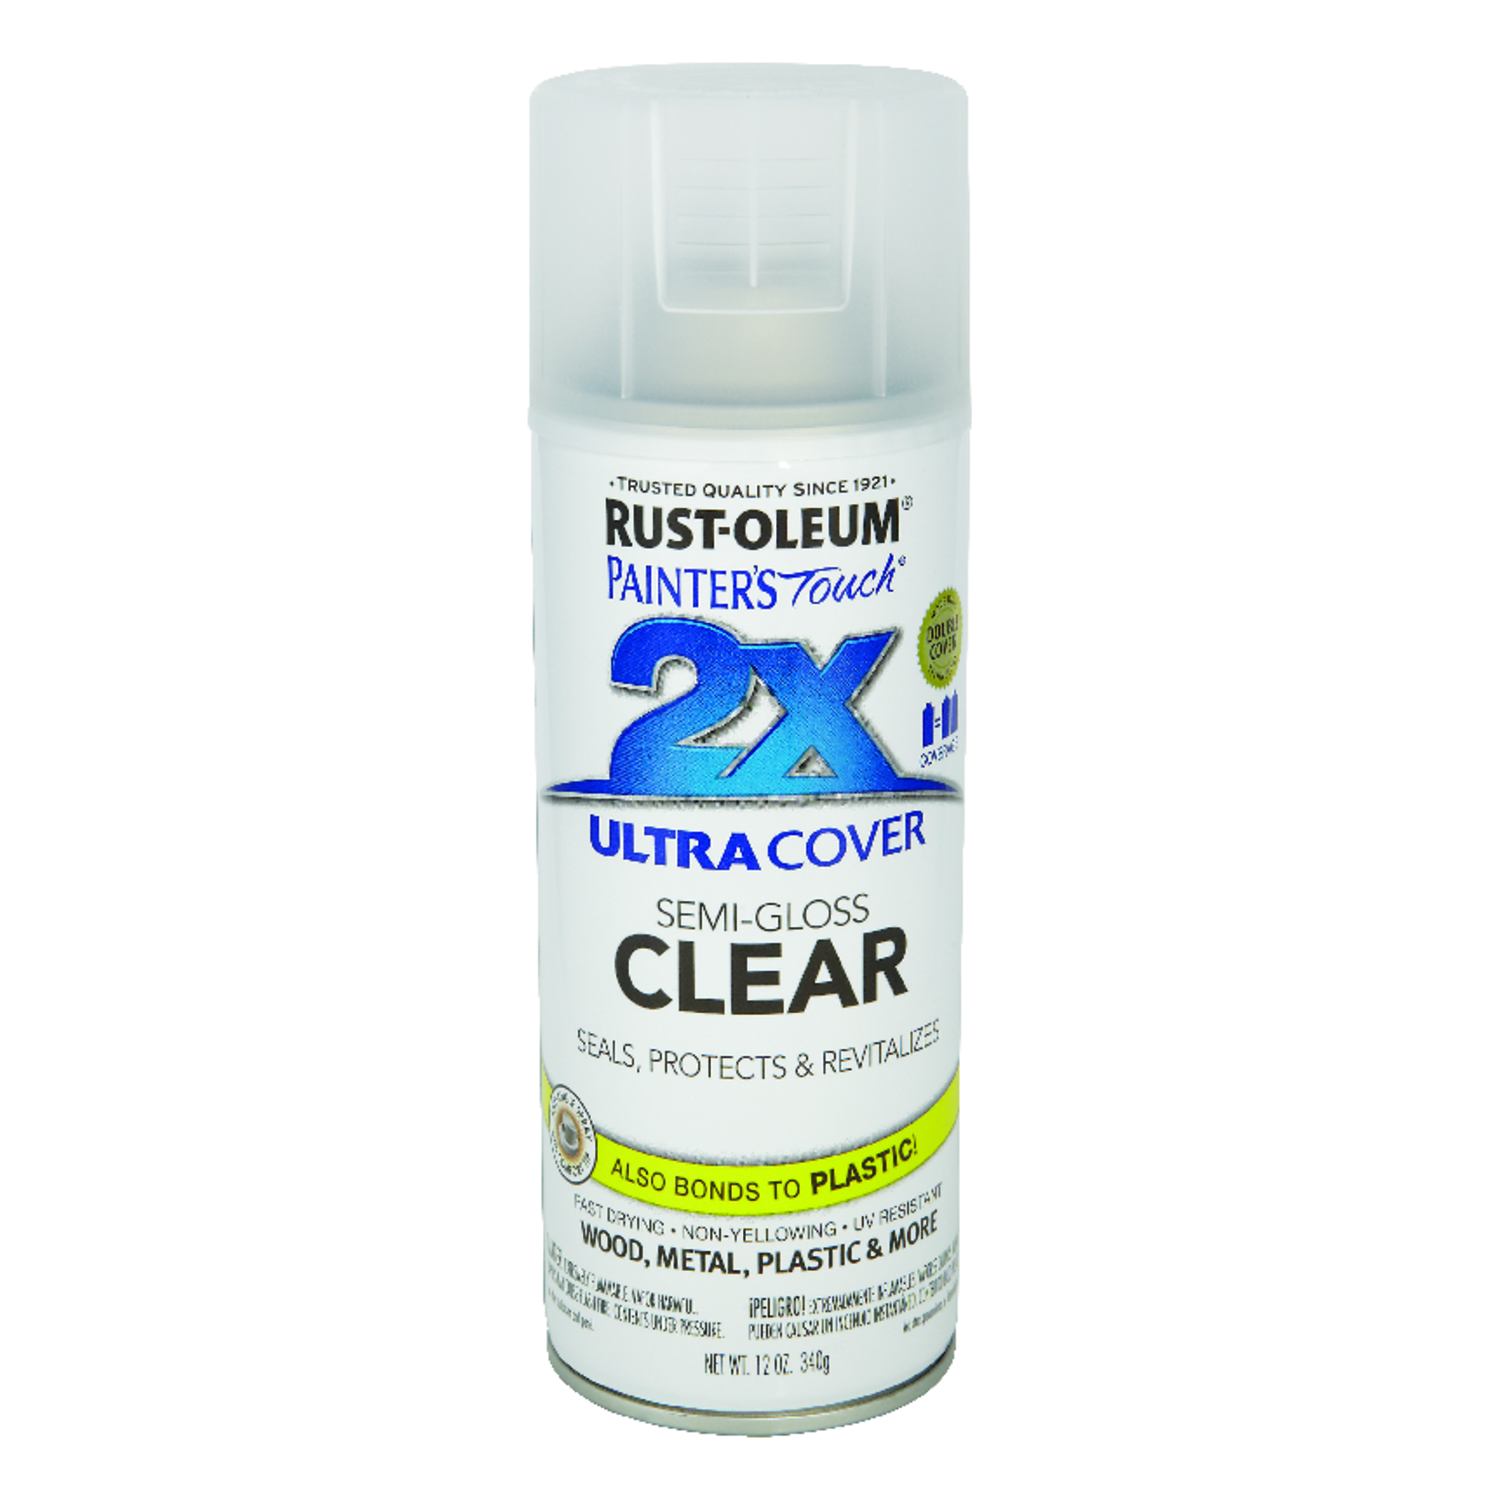 Rust-Oleum  Painter's Touch Ultra Cover  Semi-Gloss  Spray Paint  12 oz. Clear